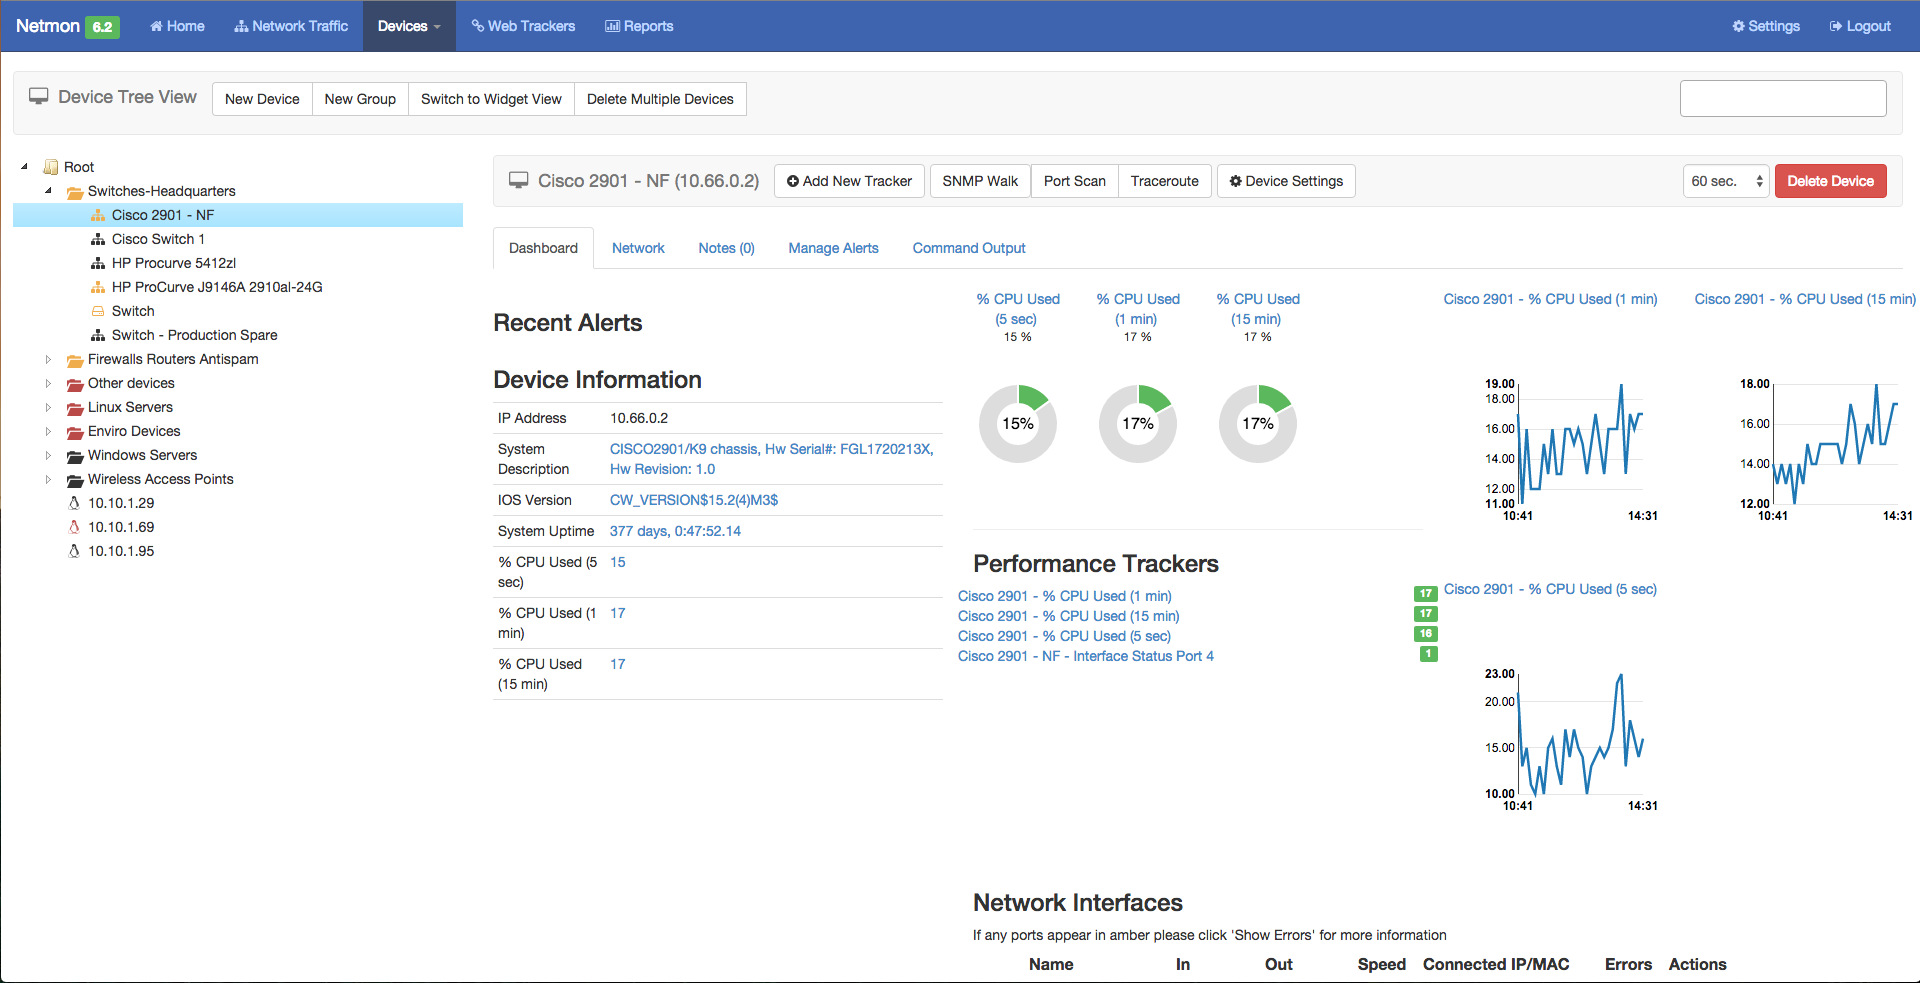 Monitoring Cisco devices on your network